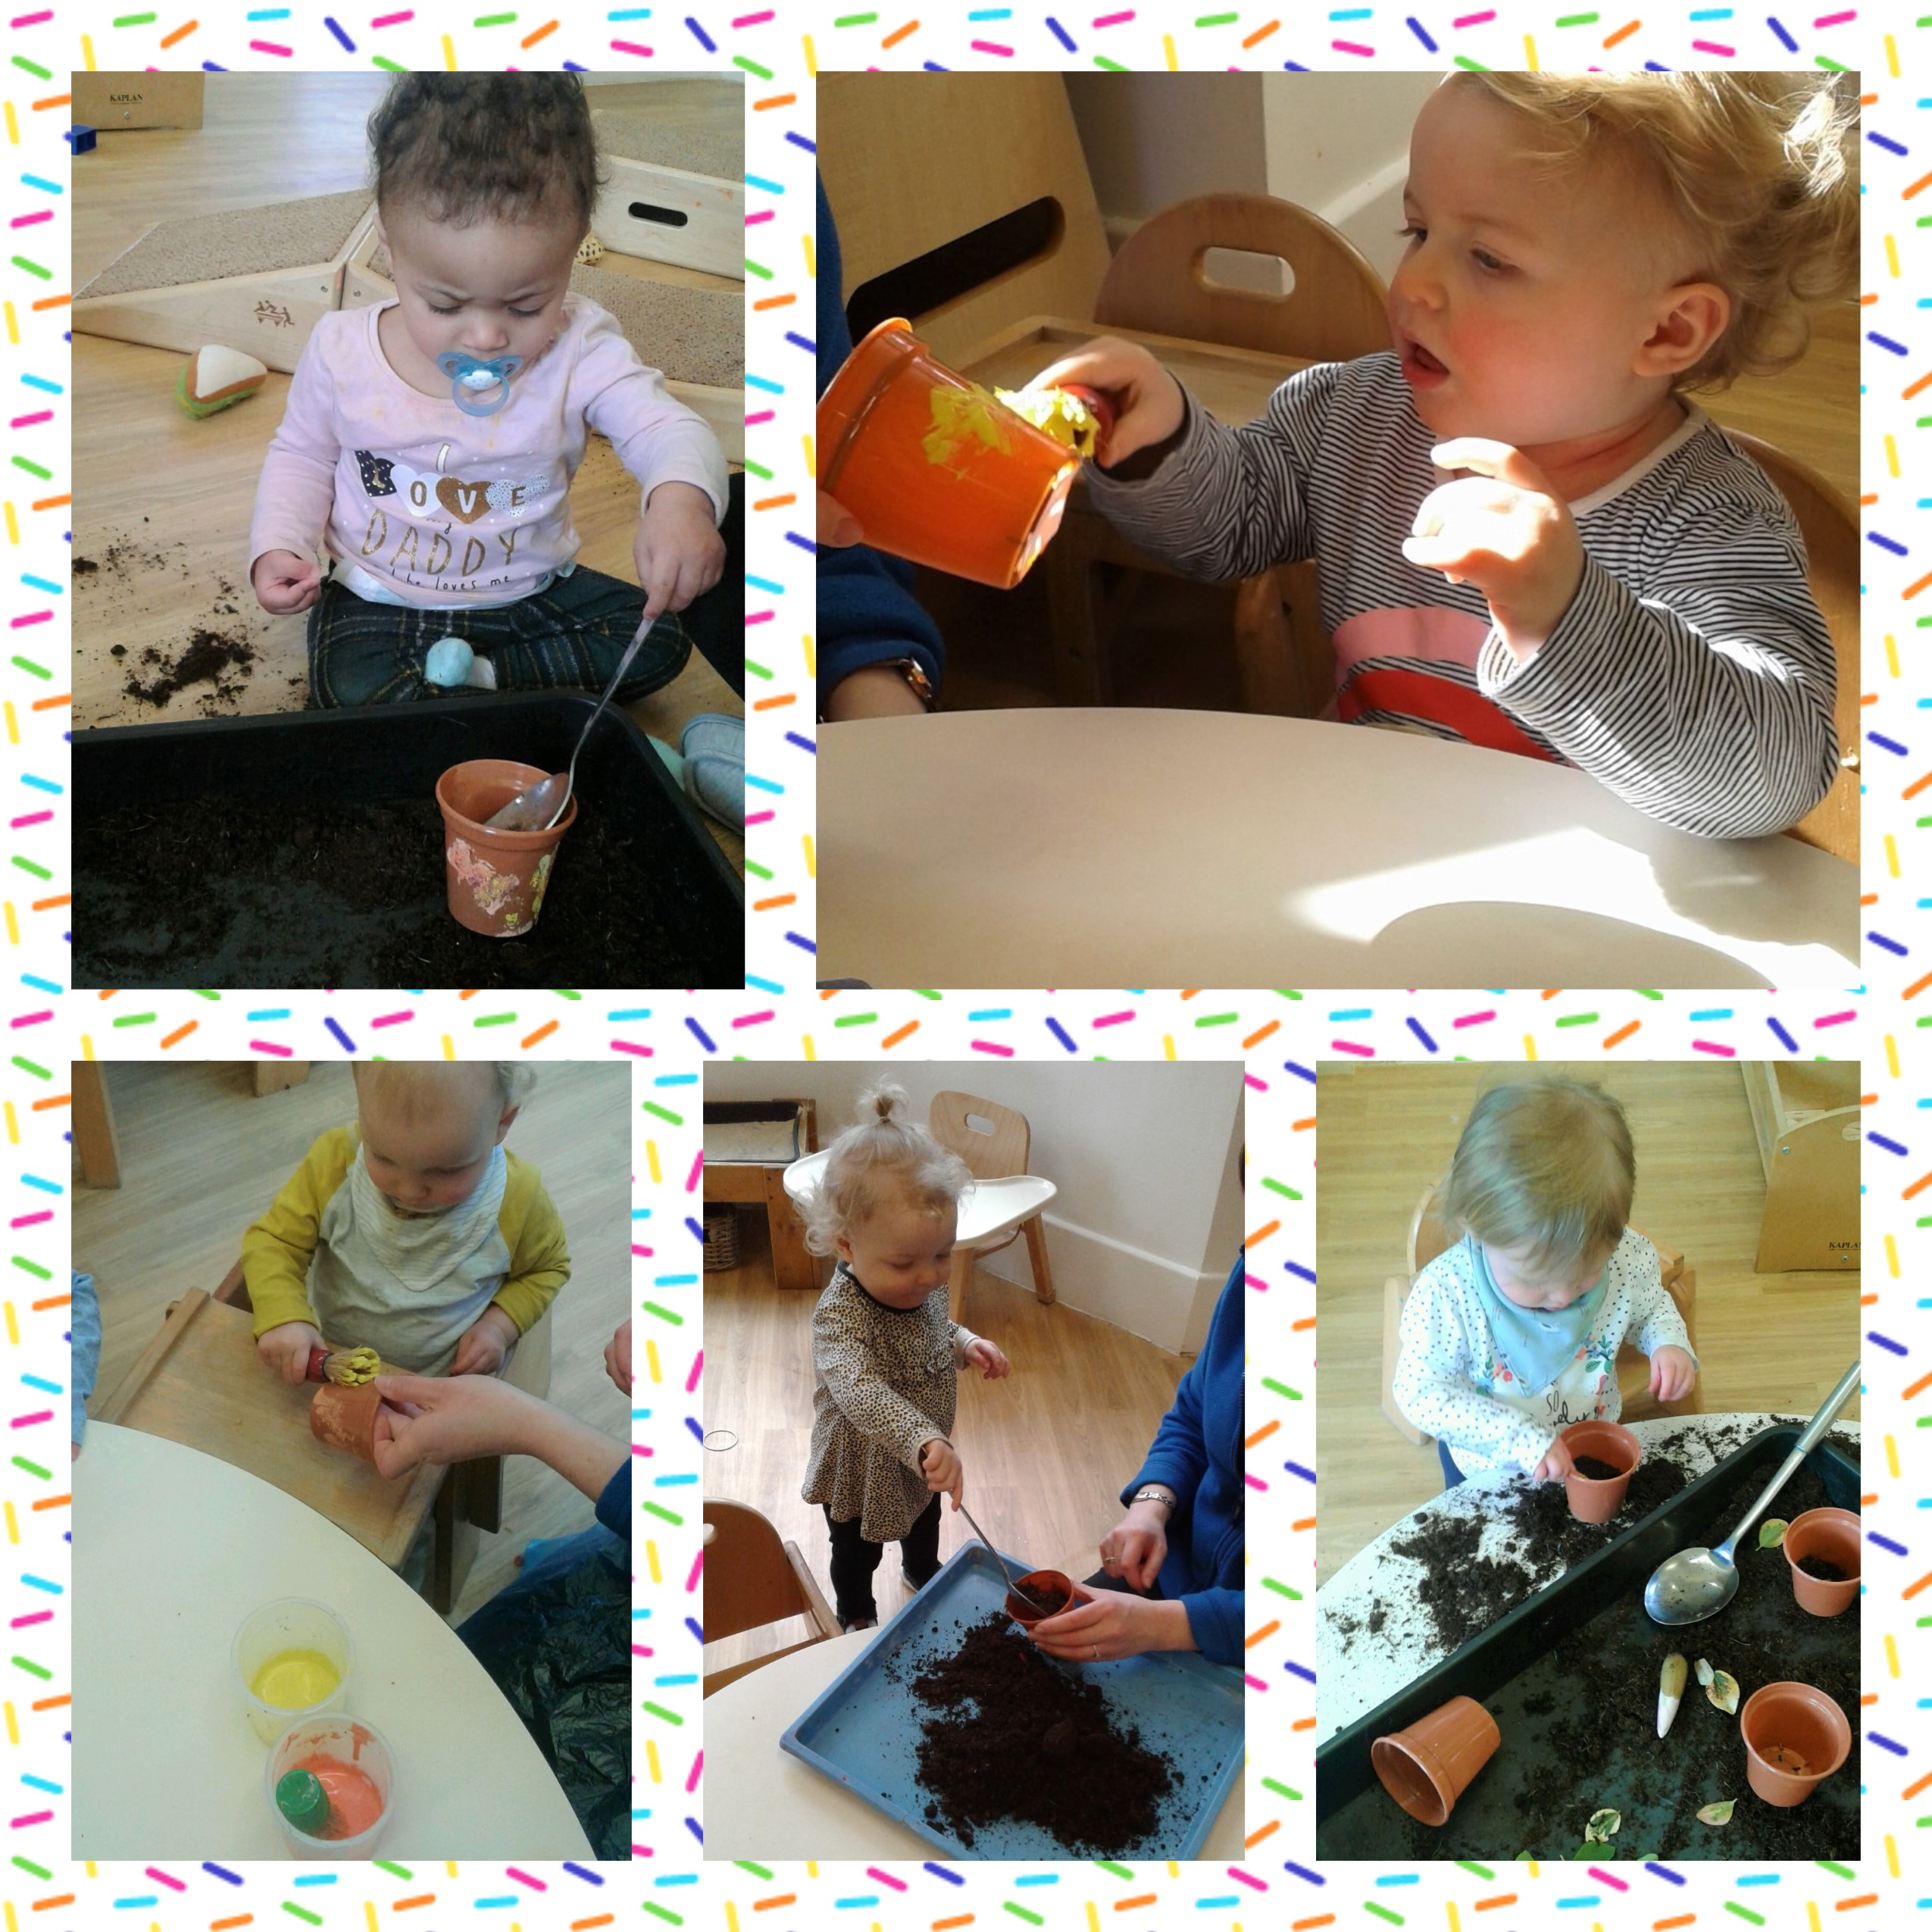 The Babies have been preparing for Mothers day by painting plant pots and putting seeds into them!